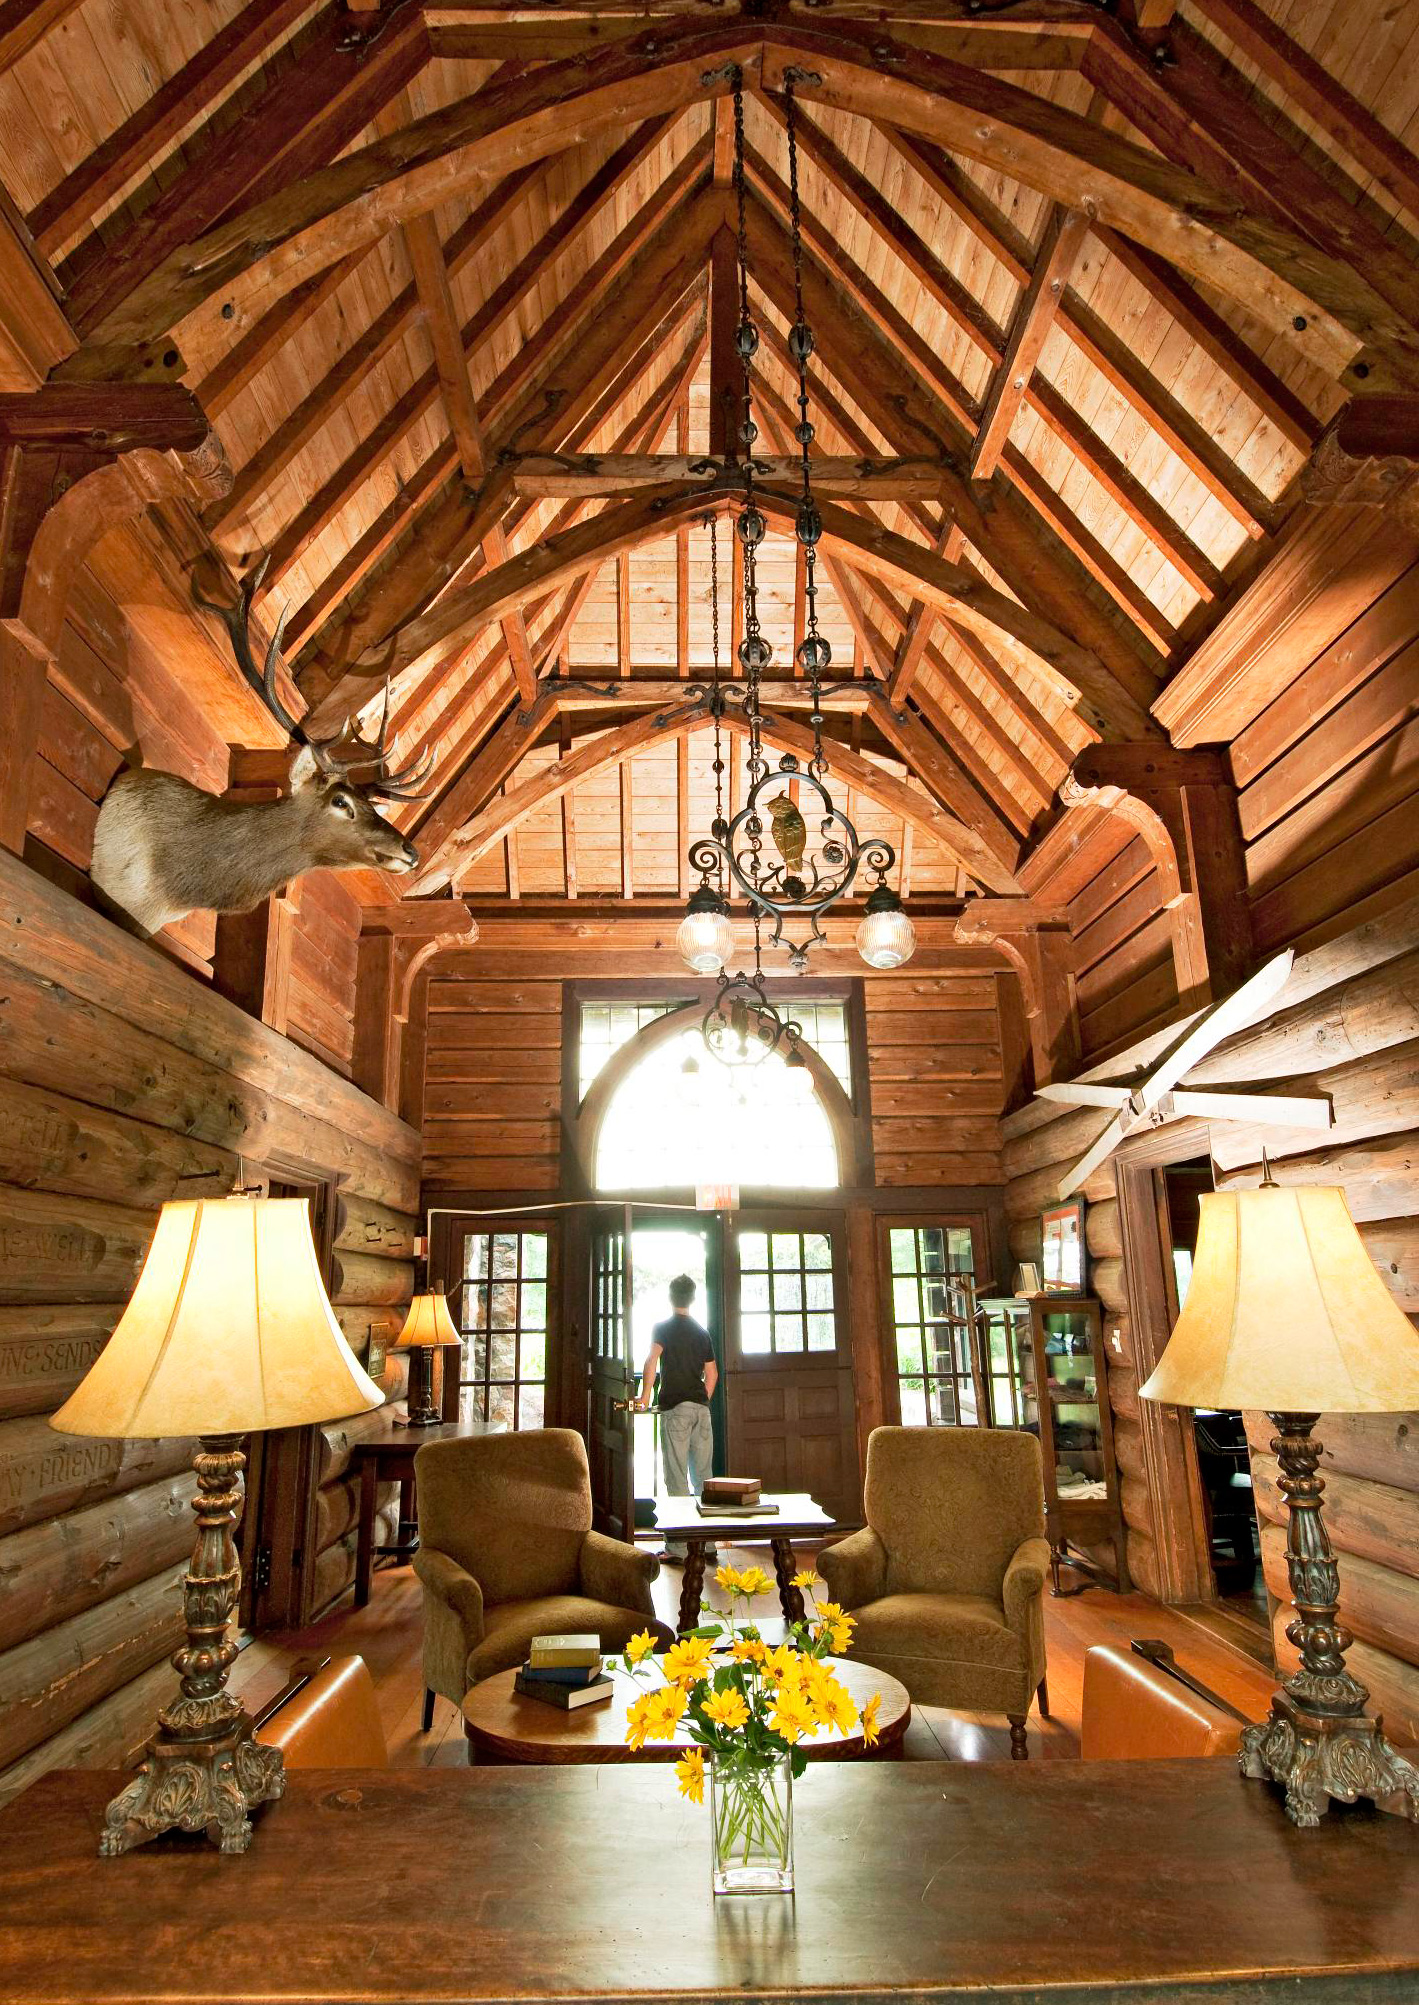 Birchwood, Wisconsin: Stout's Island Lodge